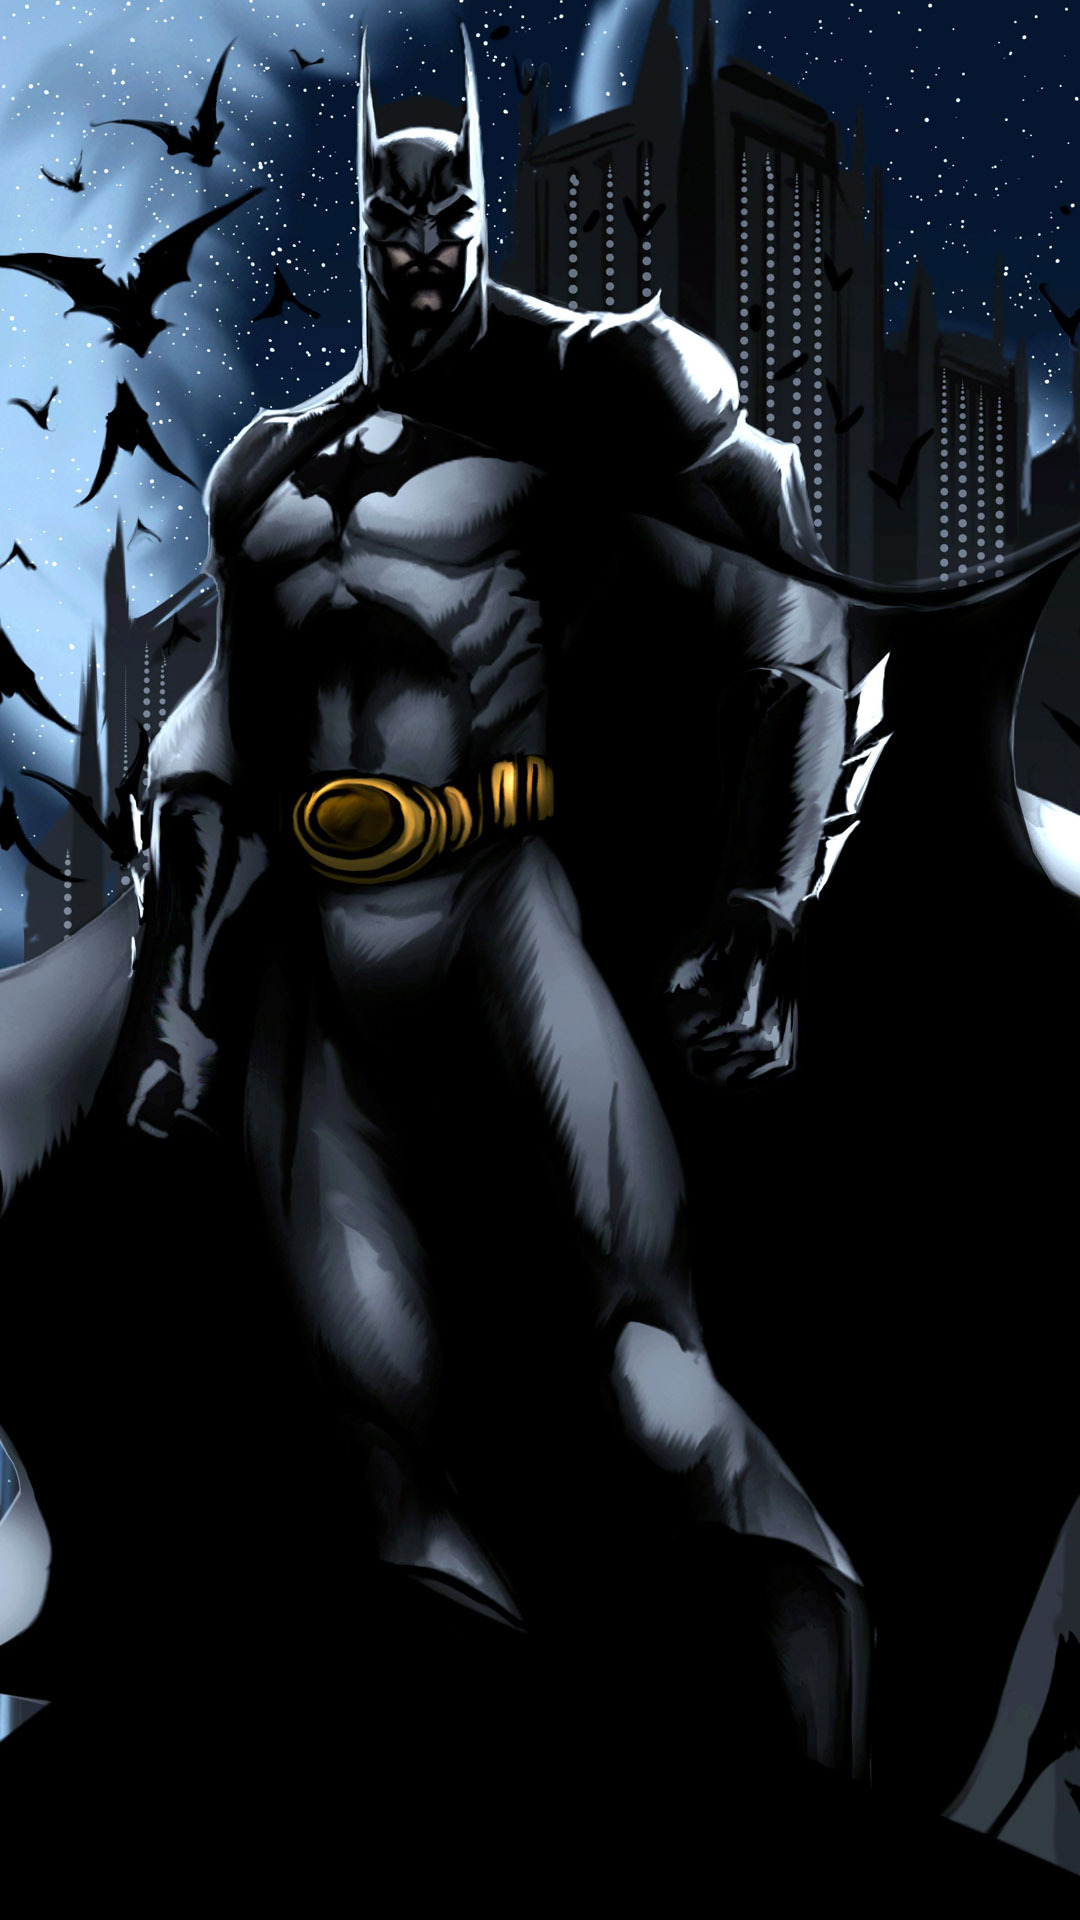 Batman Mobile Wallpaper Wallpapersafari